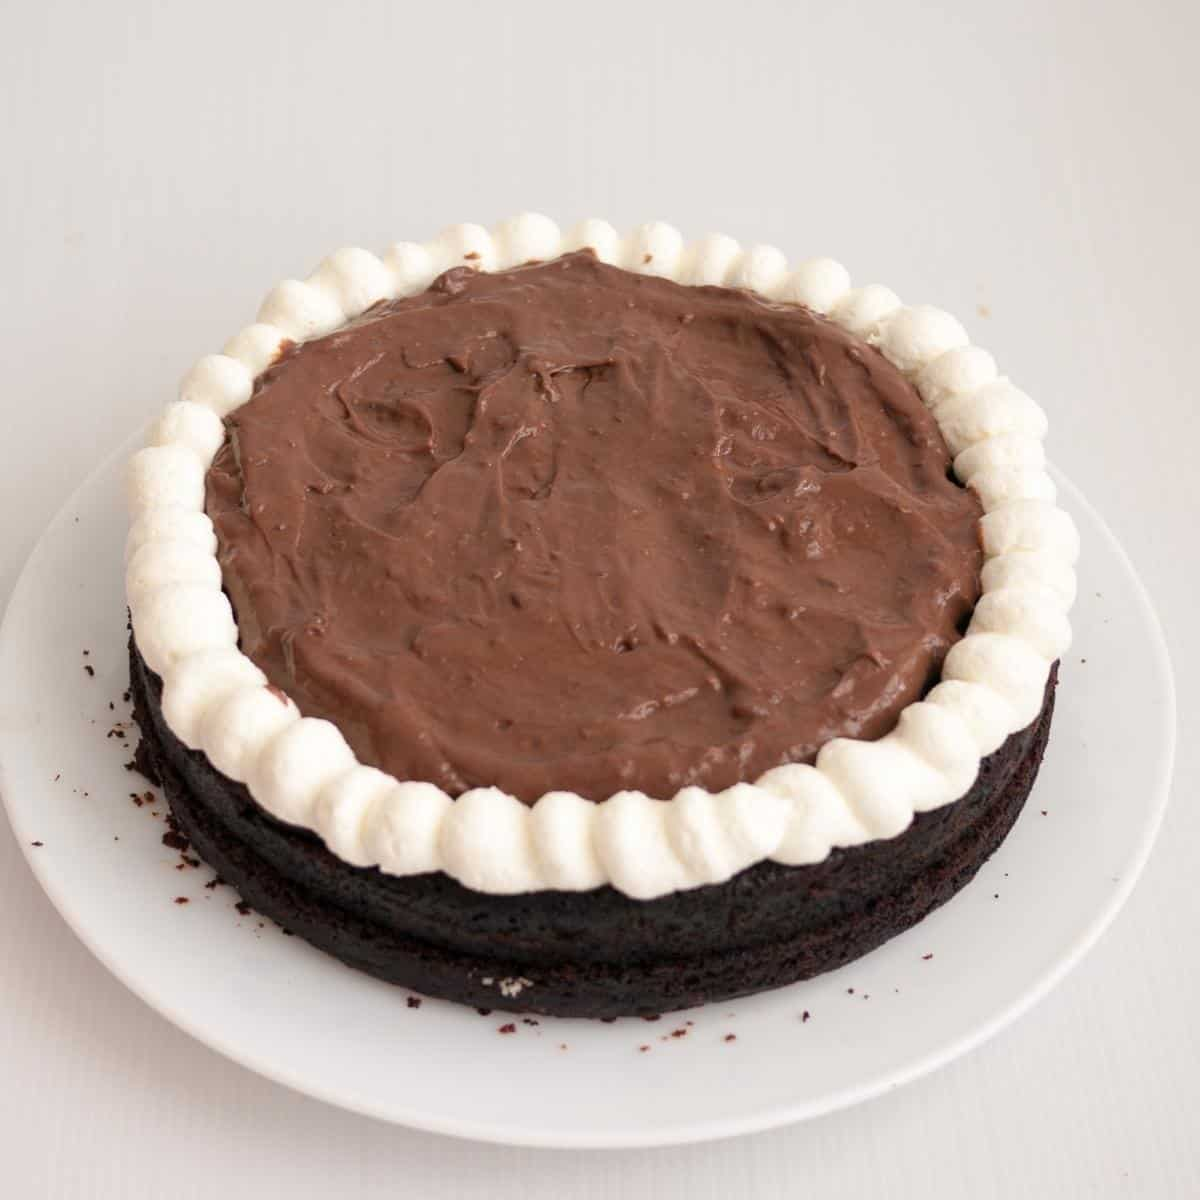 A chocolate cake filled with chocolate mousse.